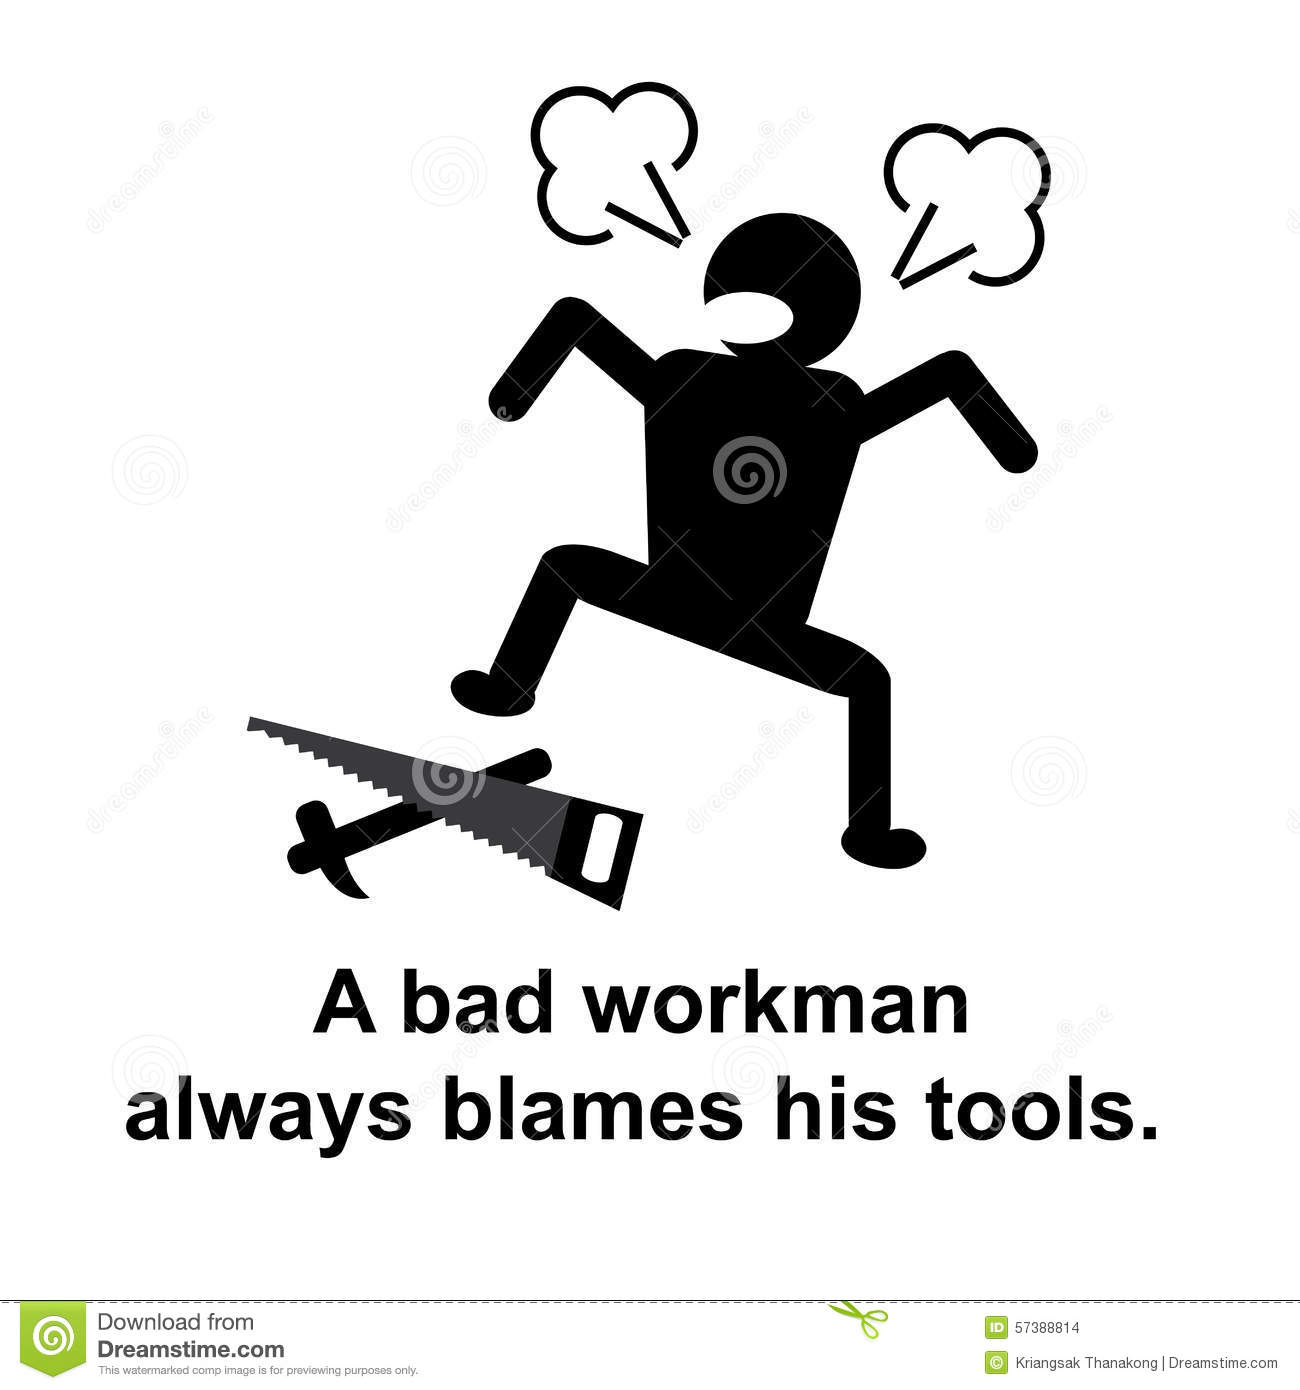 english proverb a bad workman always blames his tools stock illustration   image 57388814